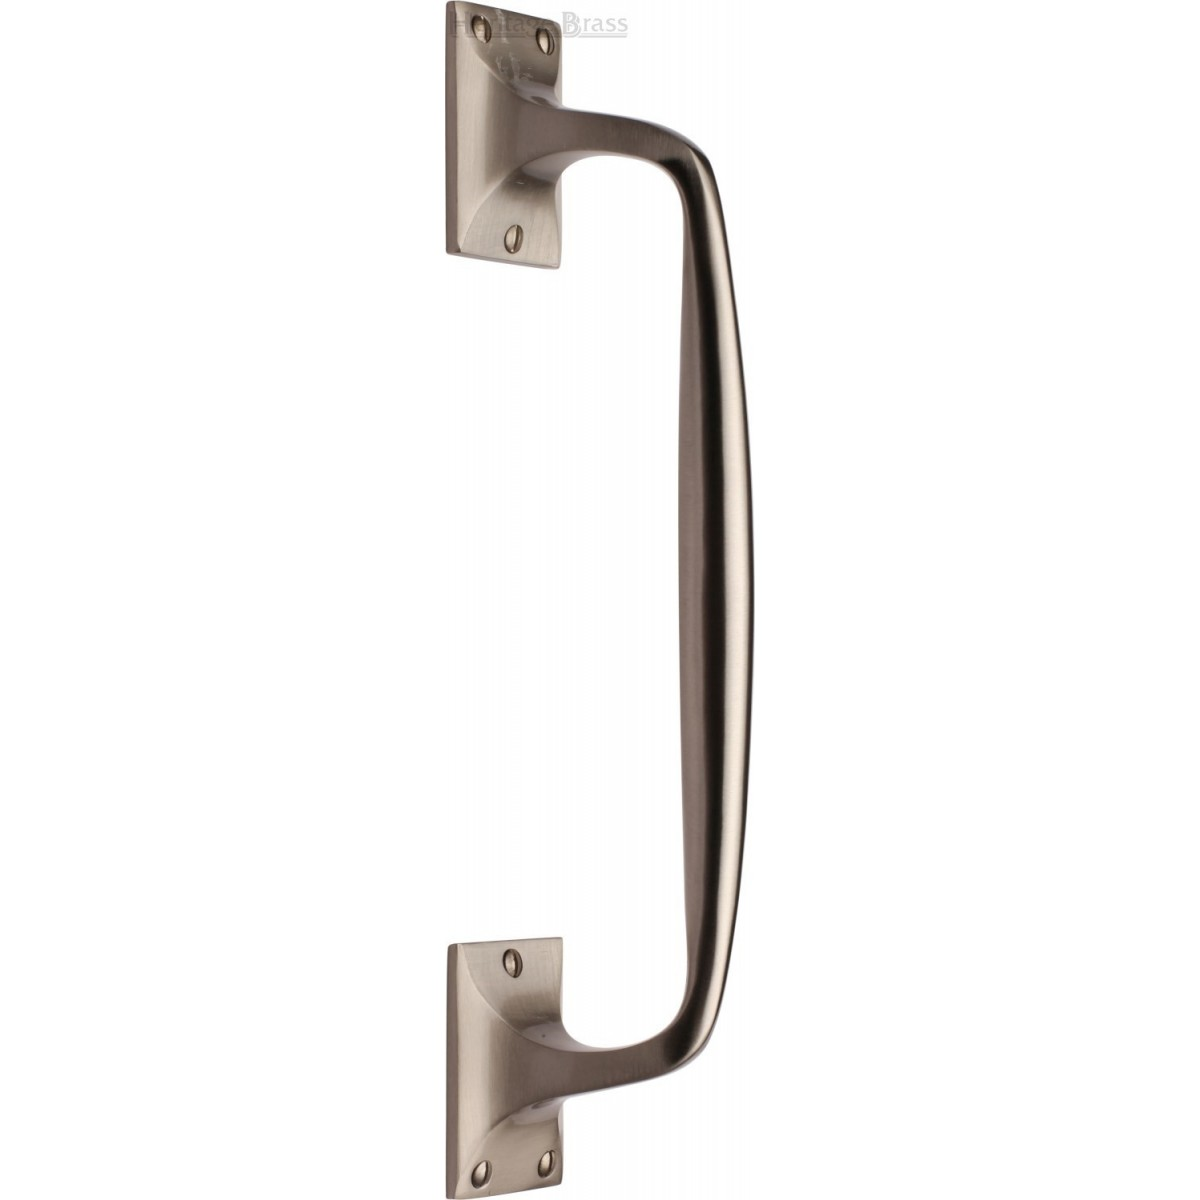 Heritage Brass Cranked Pull Handle V1150 Pull Handles